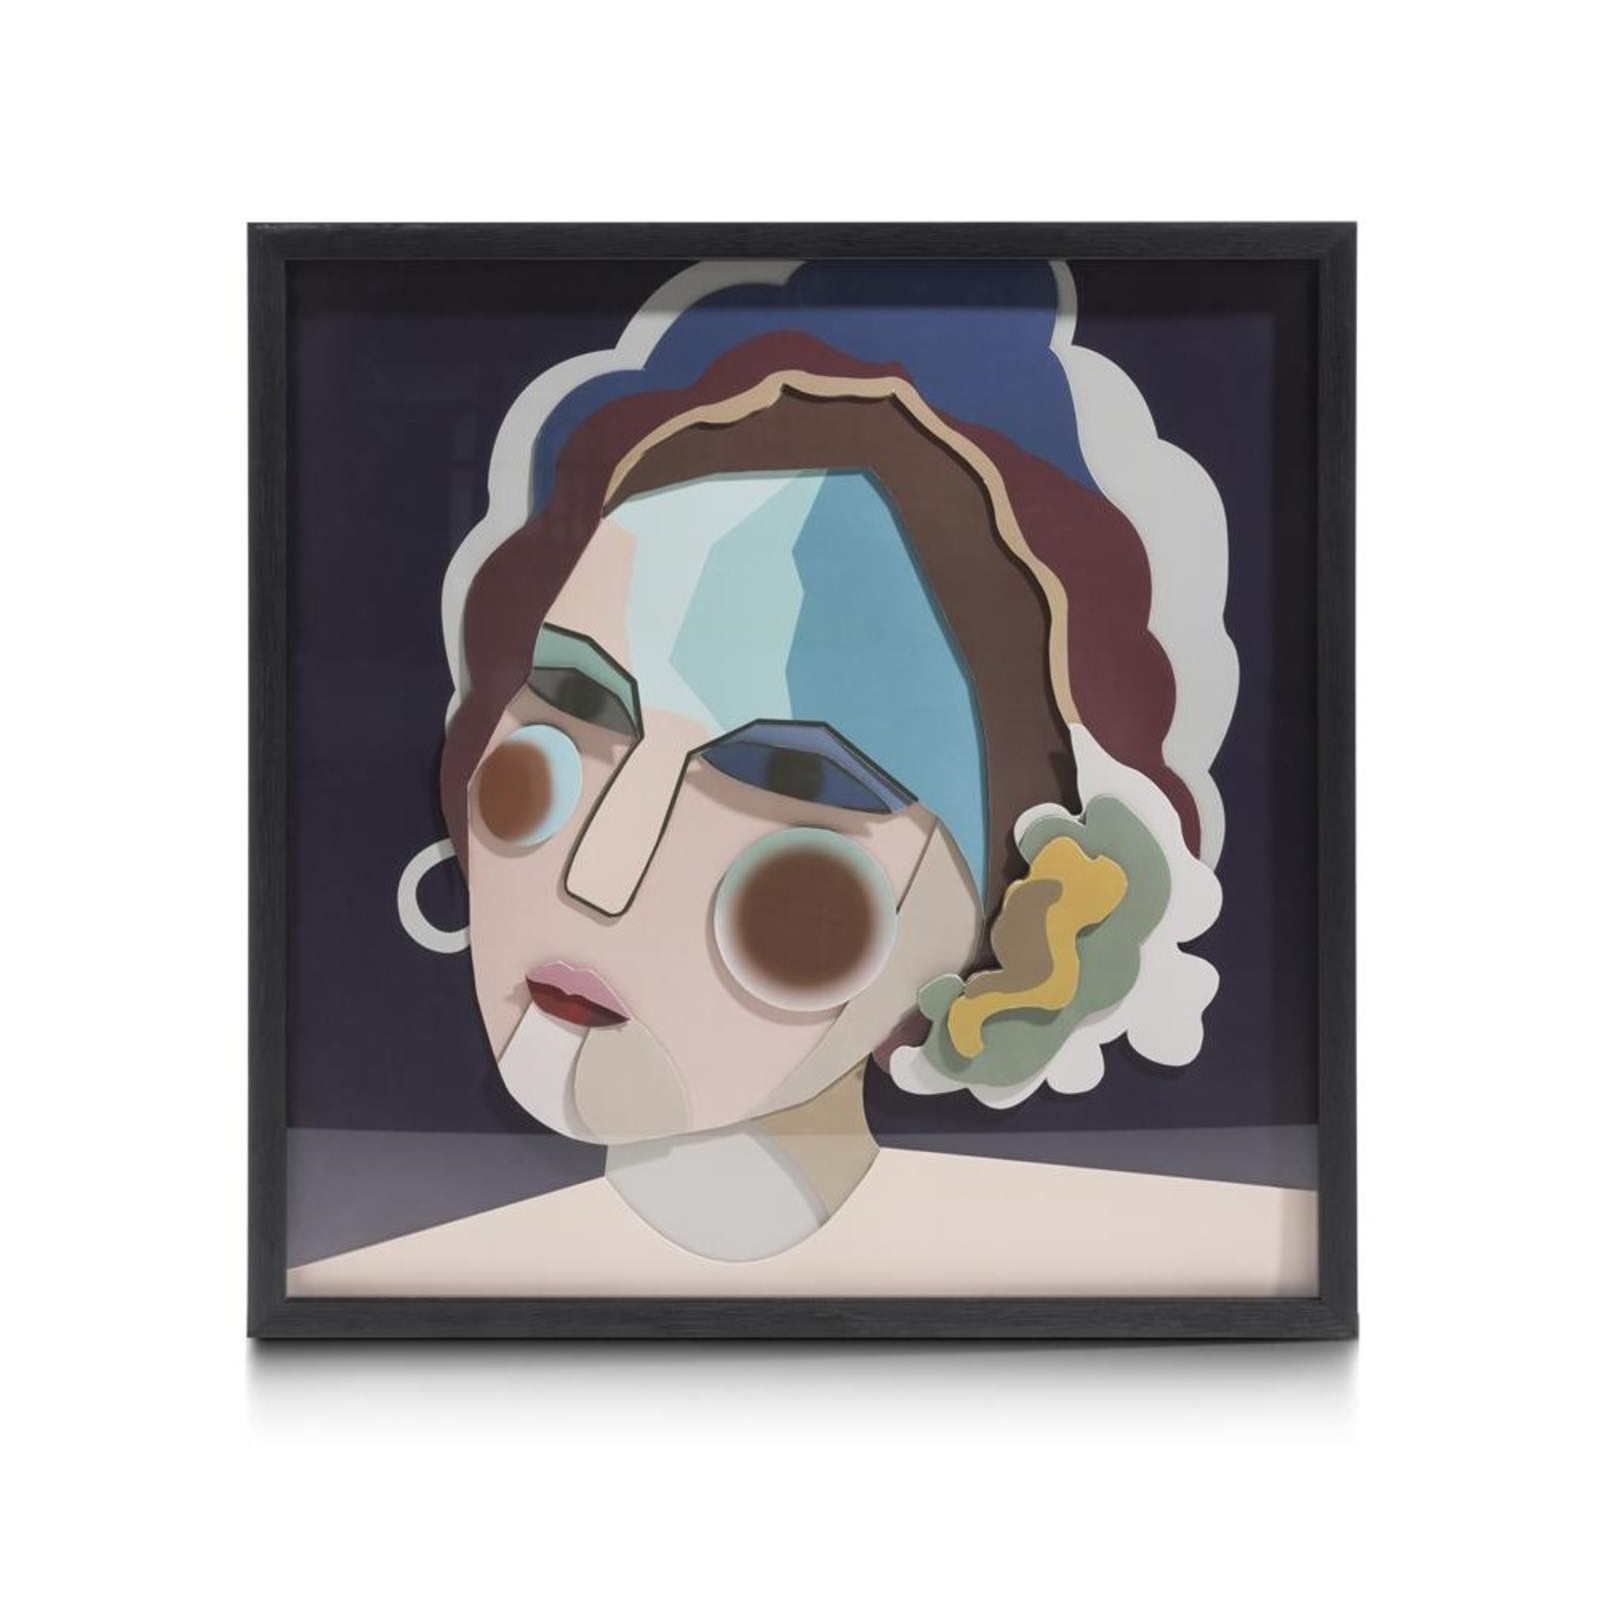 3-D WAND-OBJECT MADAME 60 X 60 CM